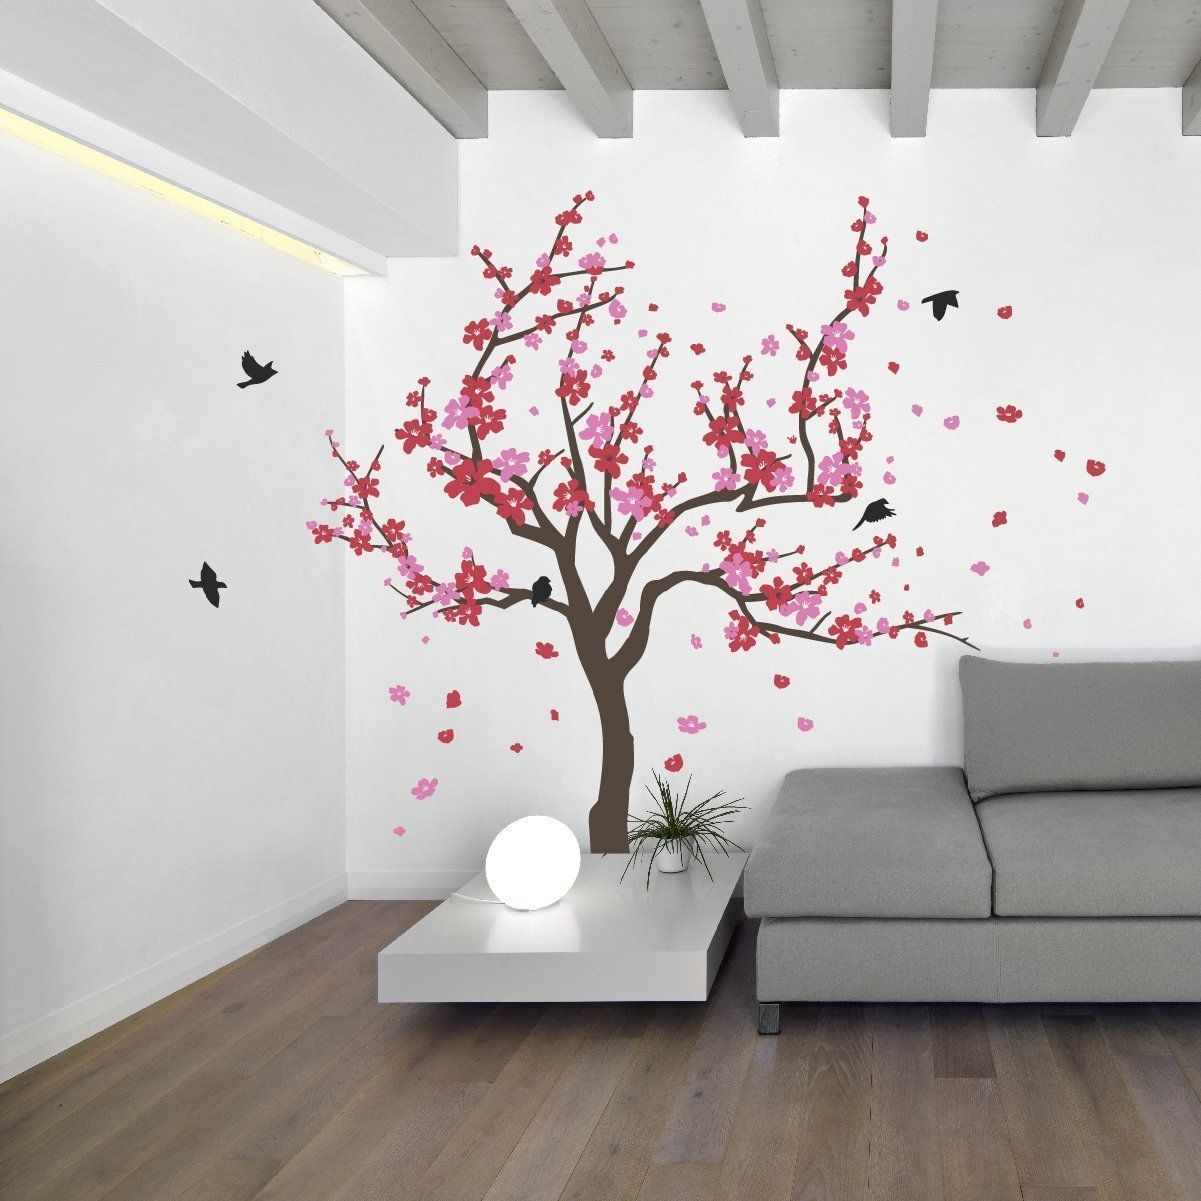 Japanese Cherry Blossom Tree And Birds Wall Decal Sticker For Flower Baby Nursery Room Decor Art Red Pin Tree Wall Decal Tree Wall Murals Tree Wall Painting